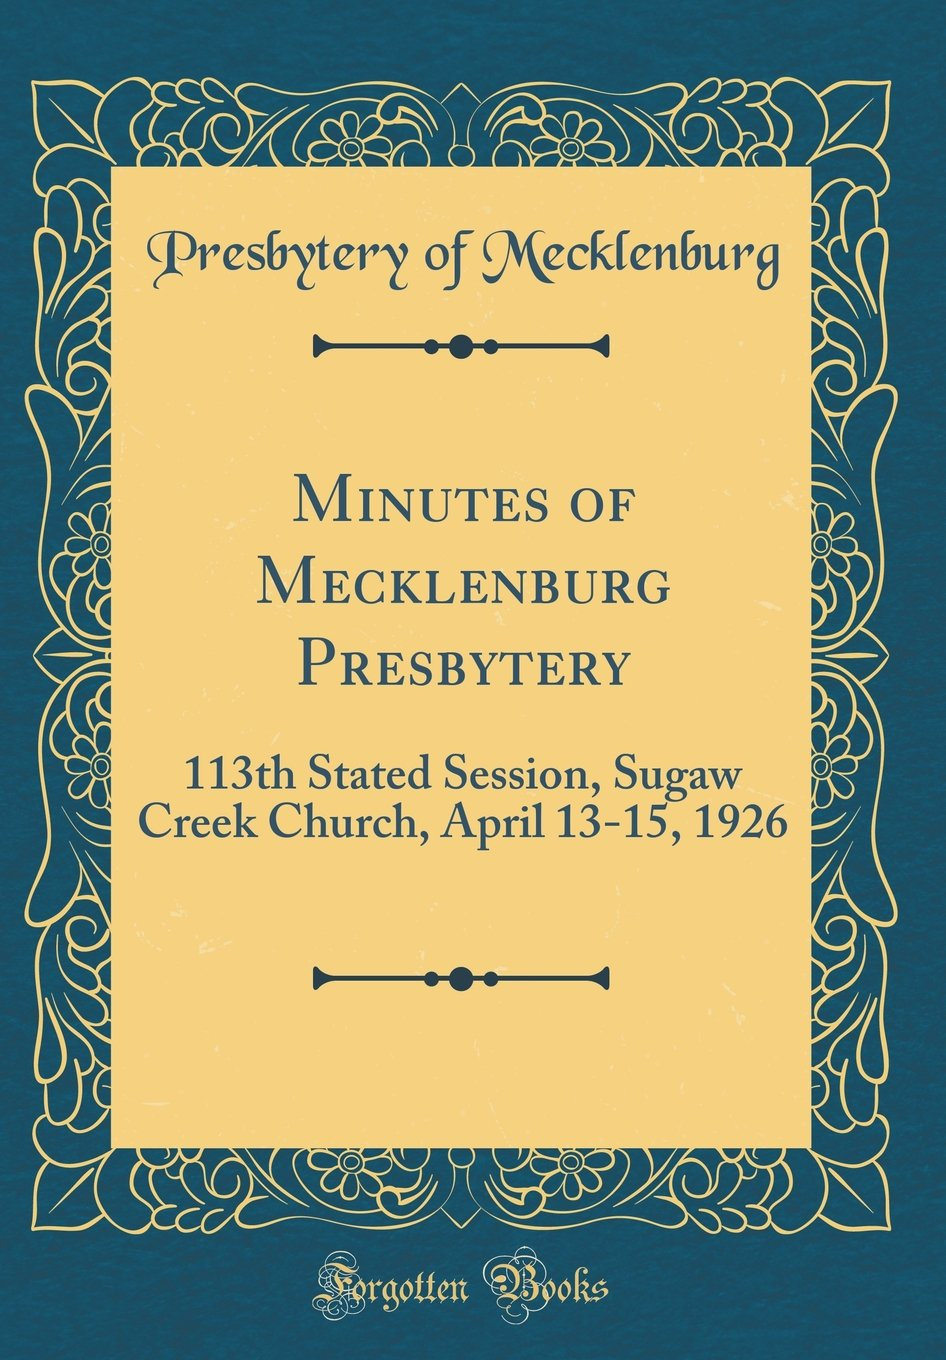 Minutes of Mecklenburg Presbytery: 113th Stated Session, Sugaw Creek Church, April 13-15, 1926 (Classic Reprint) PDF